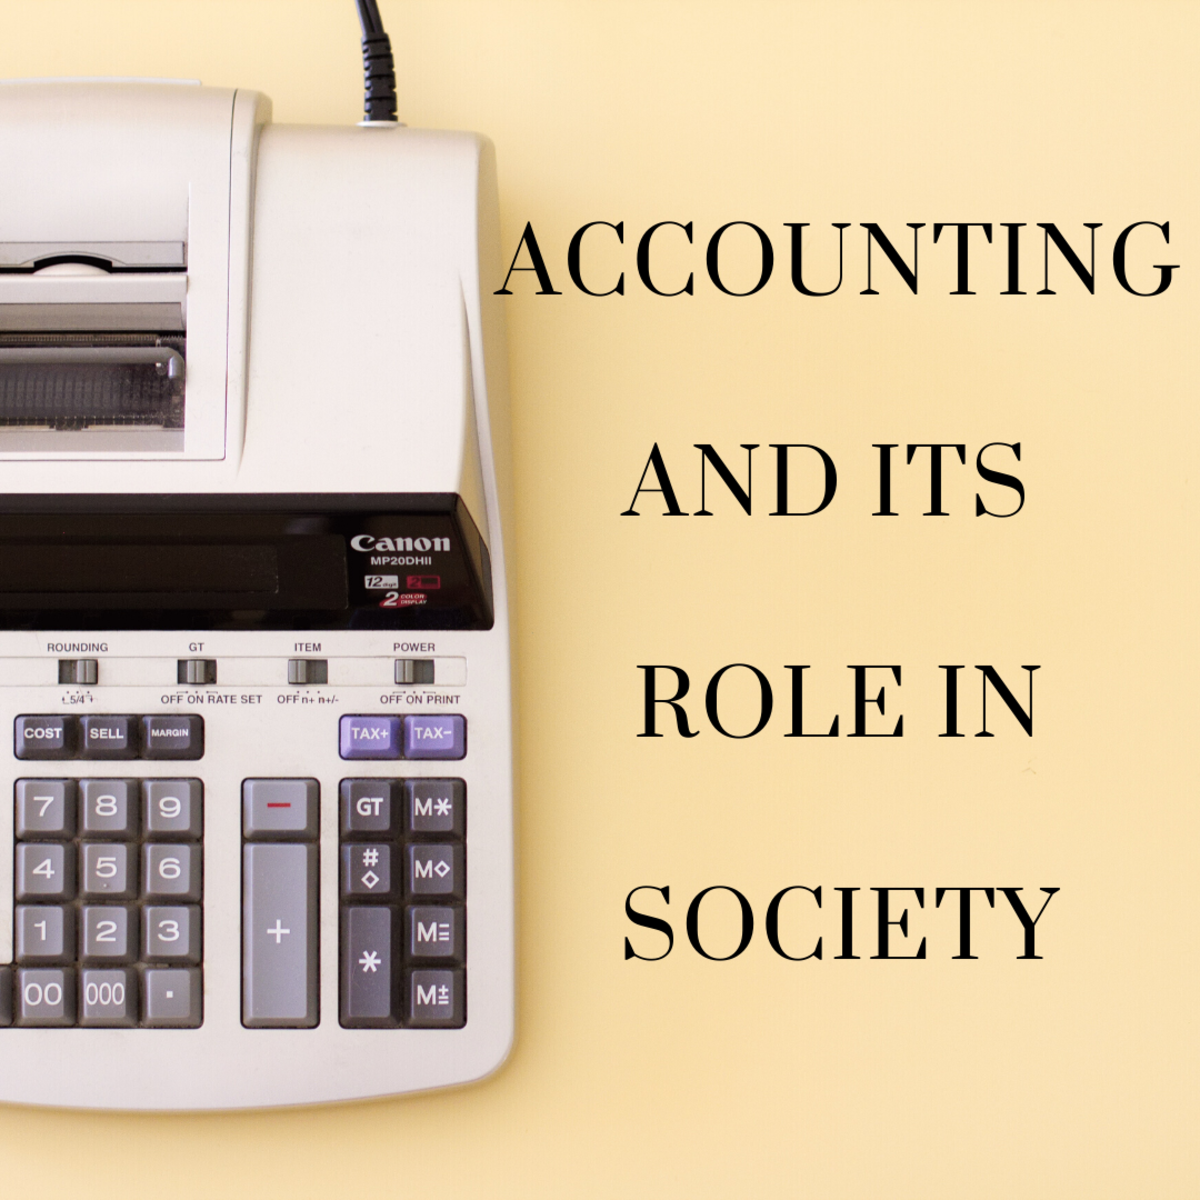 Accounting has a long history. Read on to learn more.